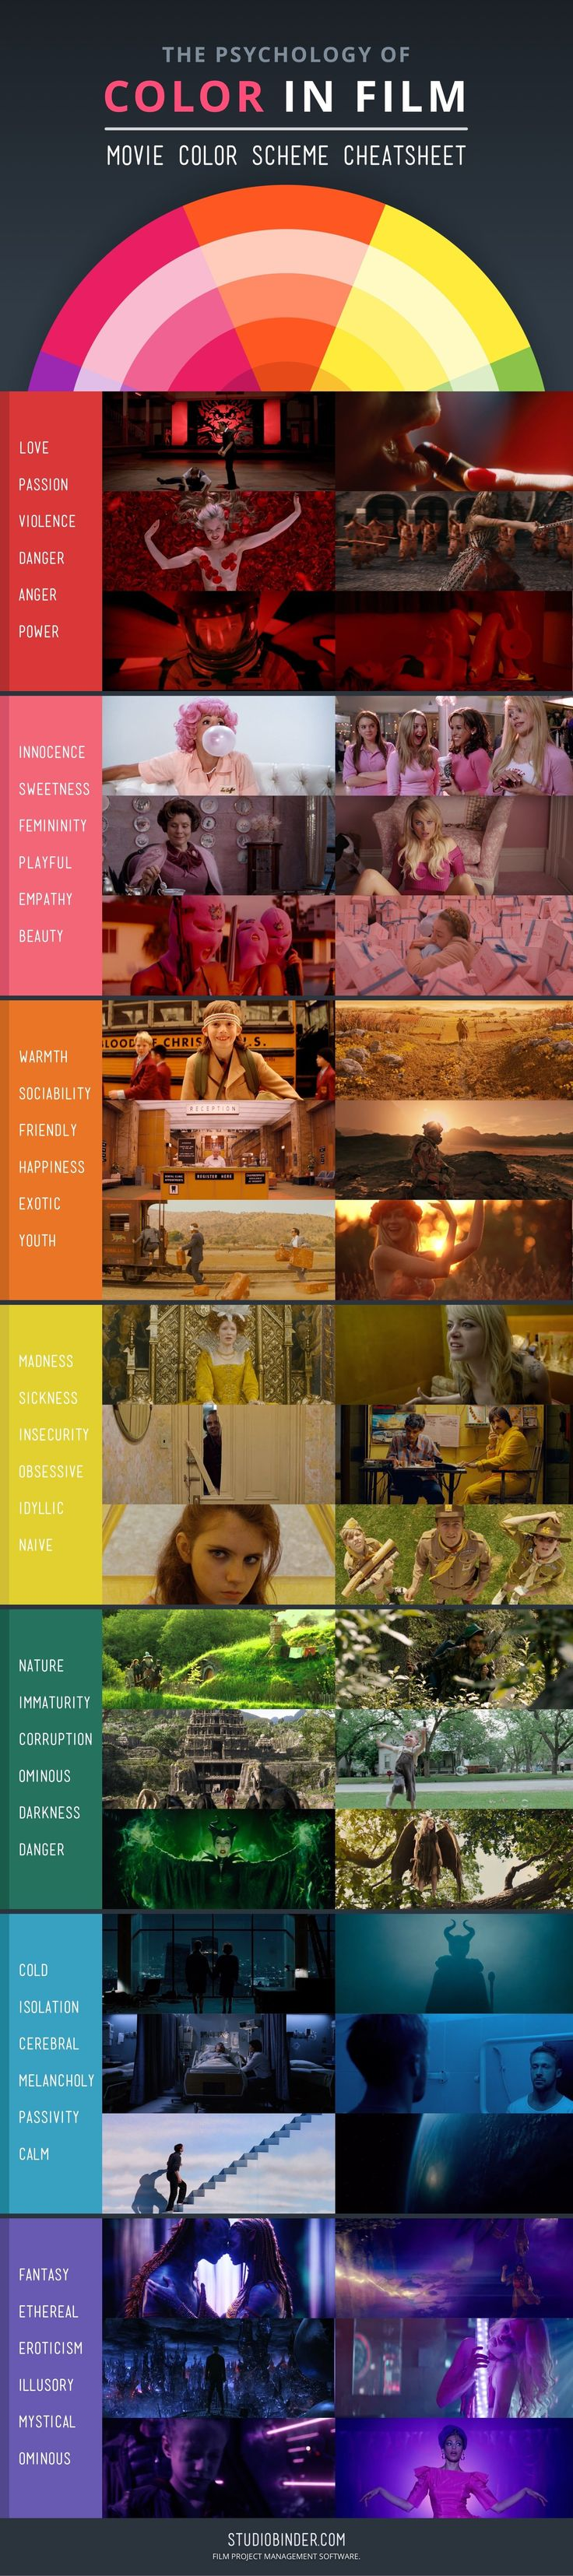 Art color psychology - The Psychology Of Color In Film